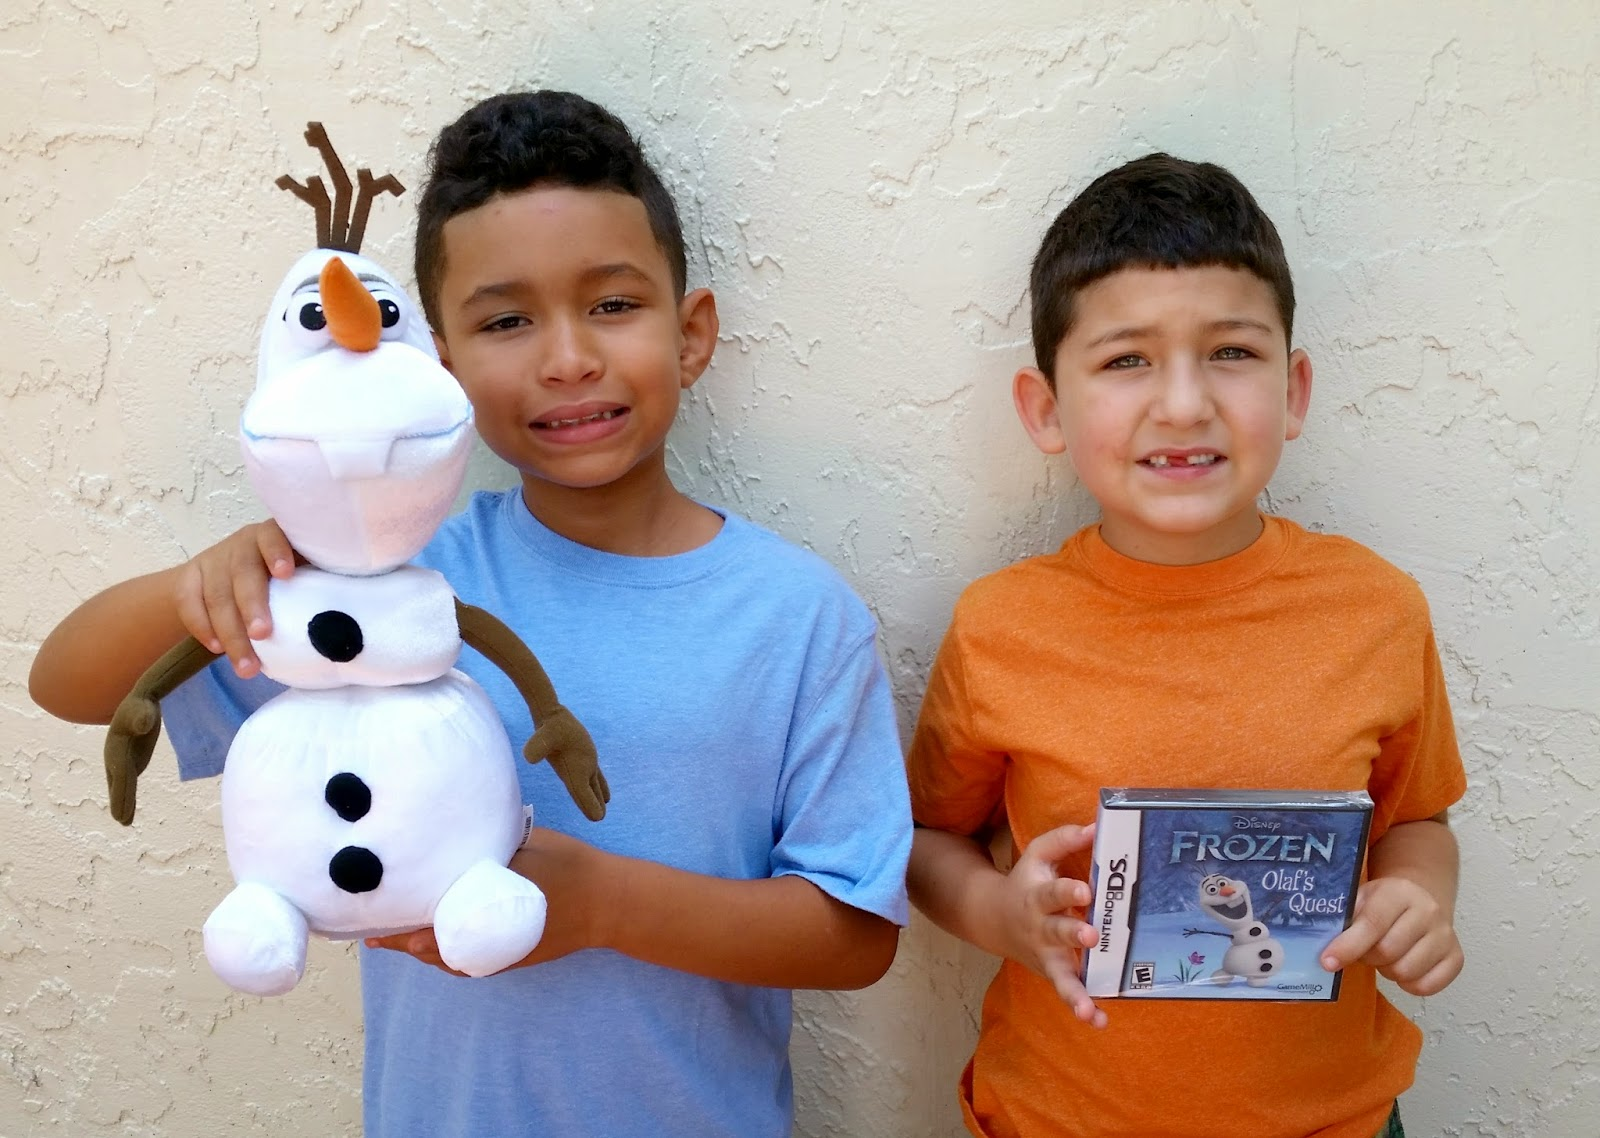 Frozen Fun for boys! #FrozenFun #shop